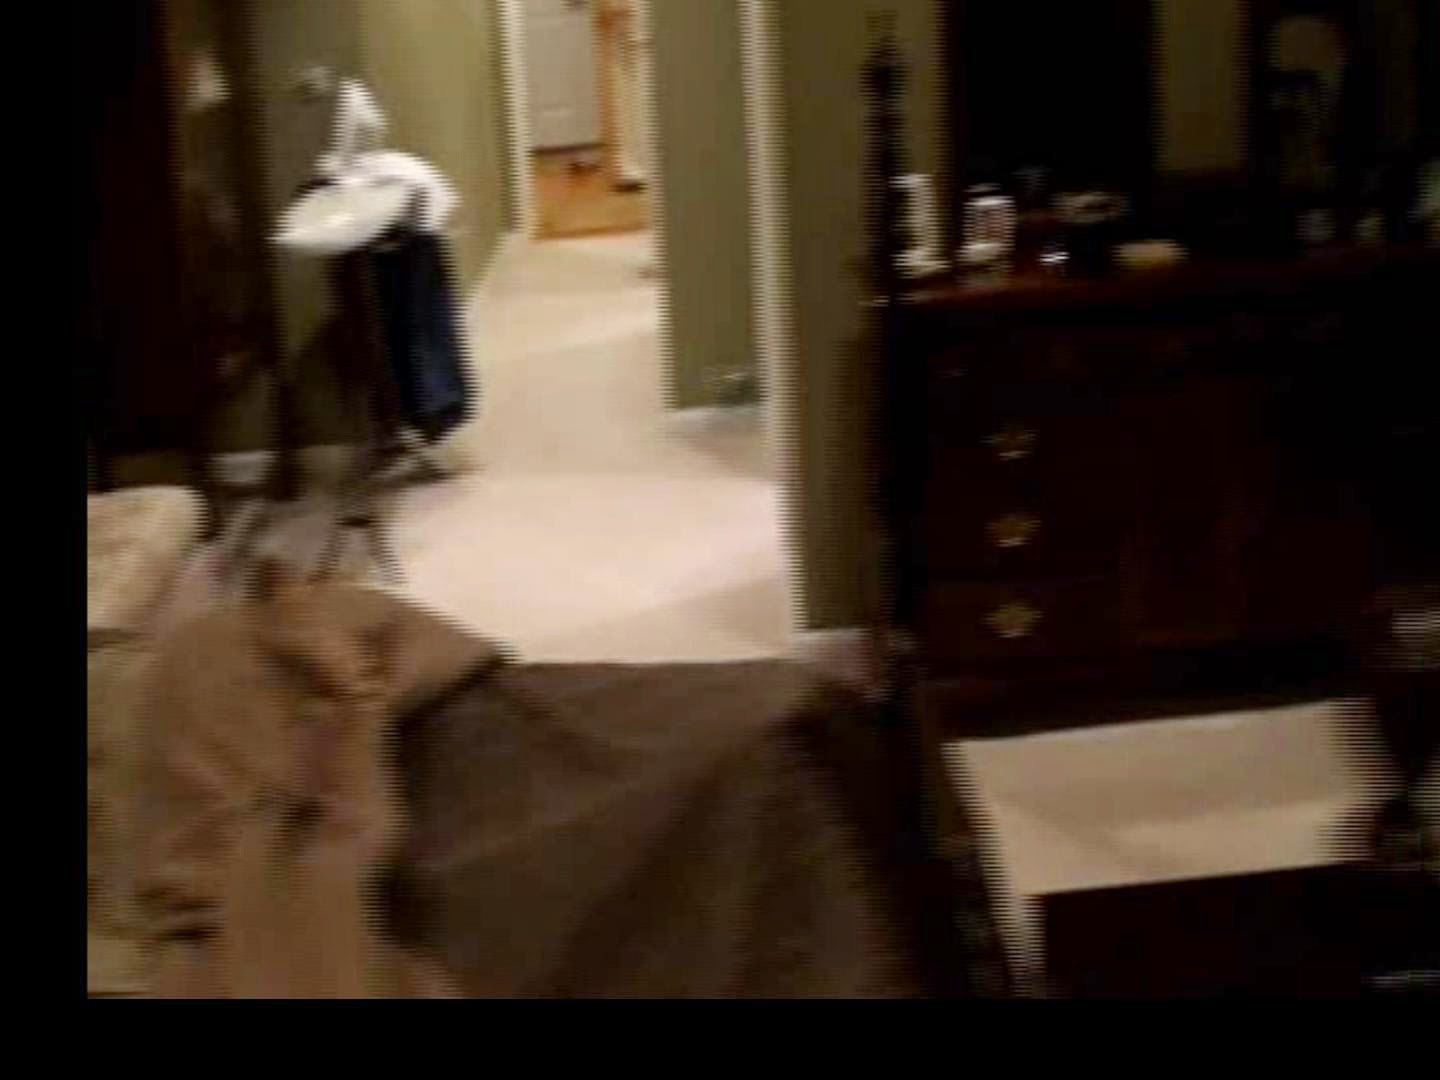 sandy hook facts research sandy hook shooting photo essay this screen cap and the one below clearly shows the outline of the feet of nancy lanza under her blankets as she lay deceased in her bed at home